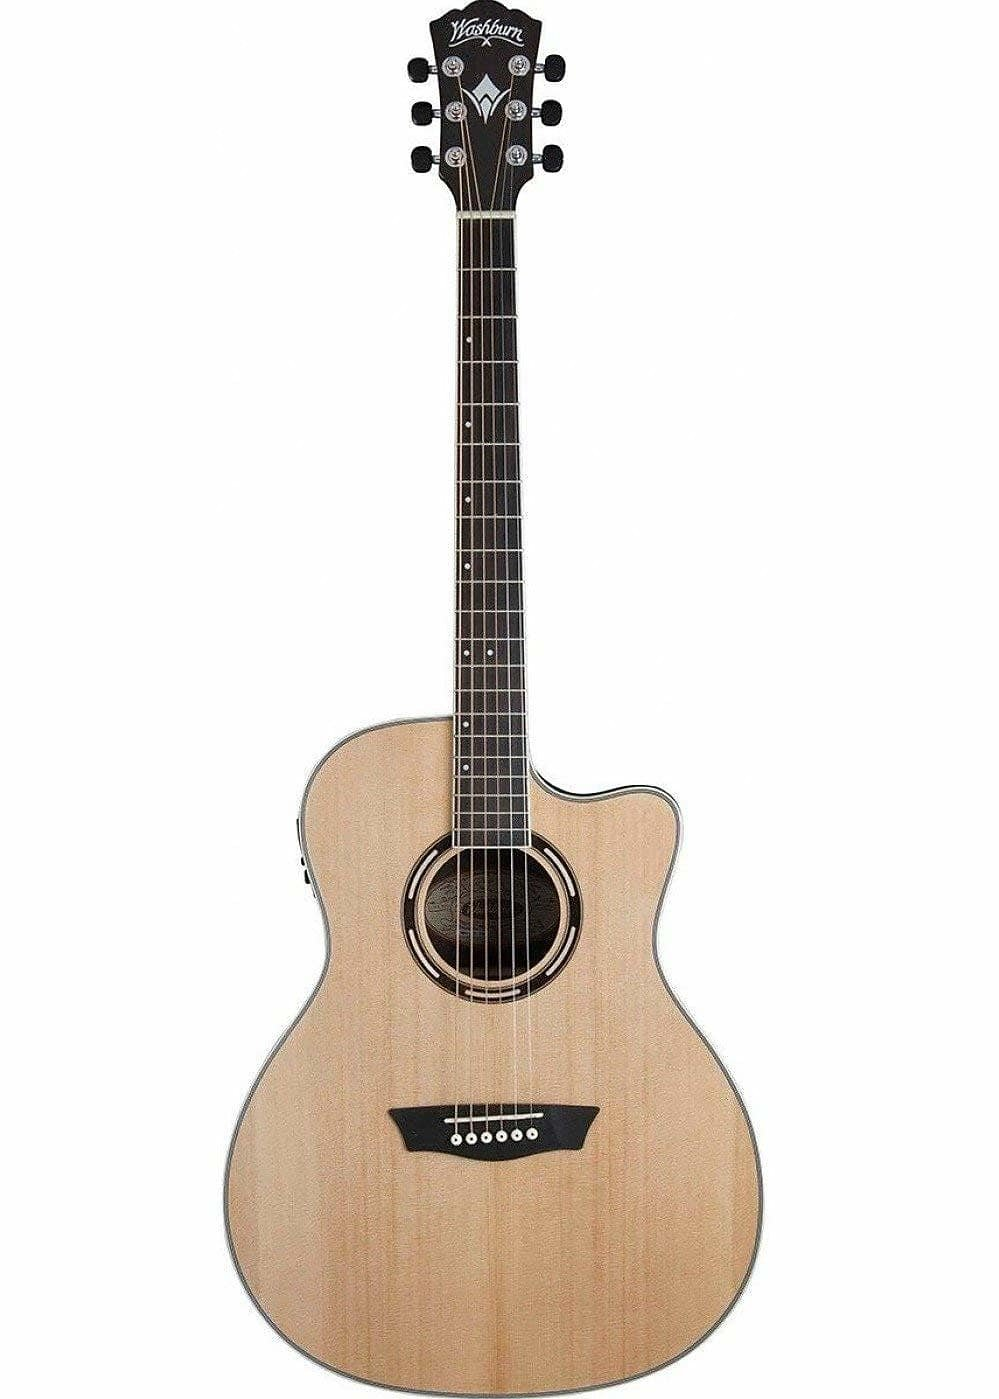 WASHBURN APPRENTICE AG70CEK-A AE GRAND AUDITORIUM GUITAR SPRUCE/WALNUT